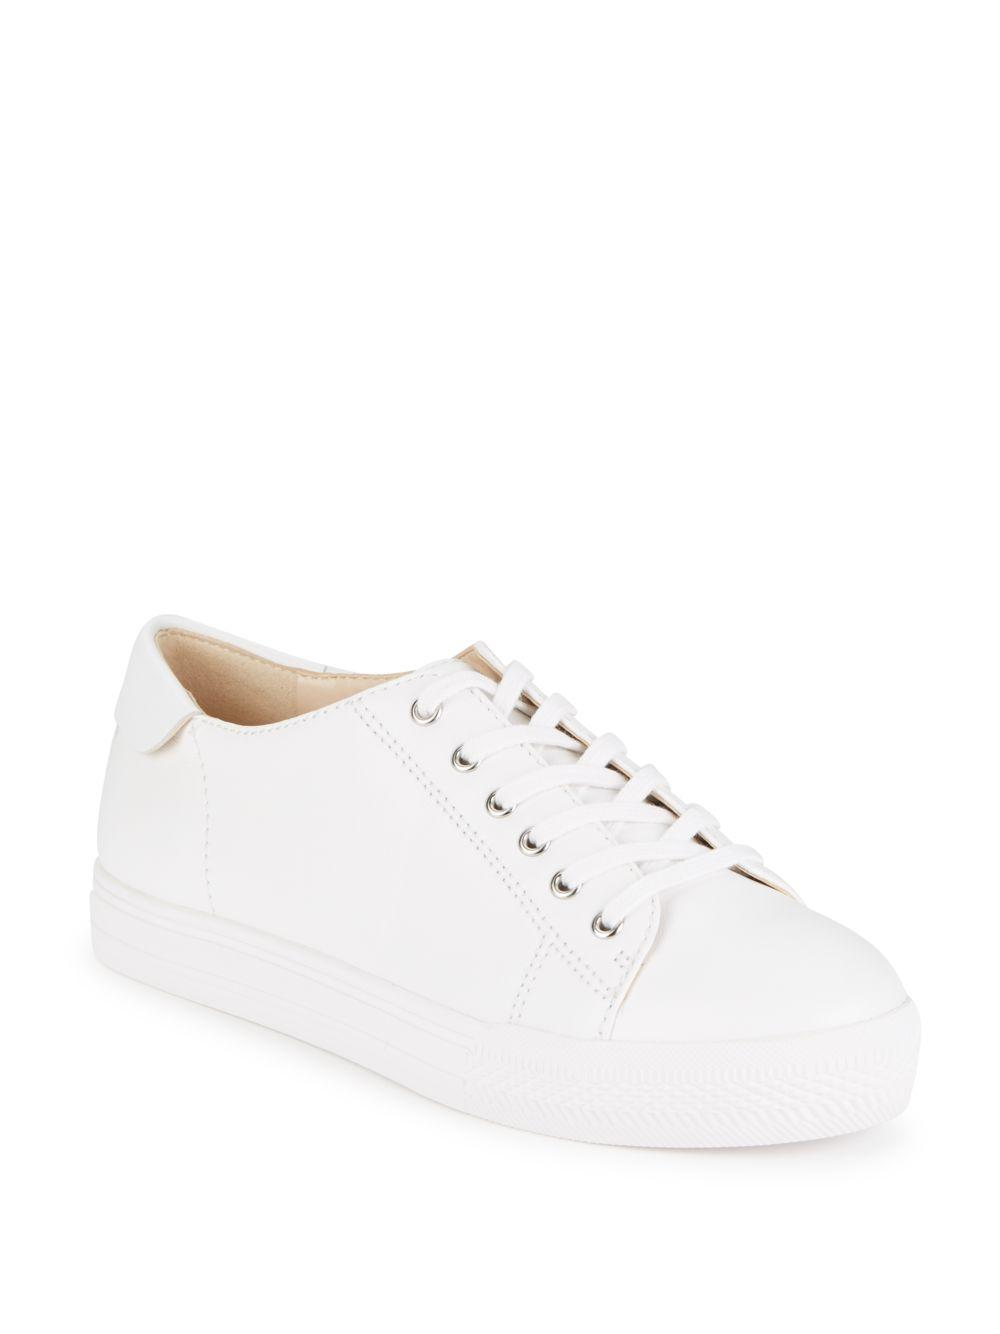 Nine West Patrick Leather Platform Sneakers In White Lyst